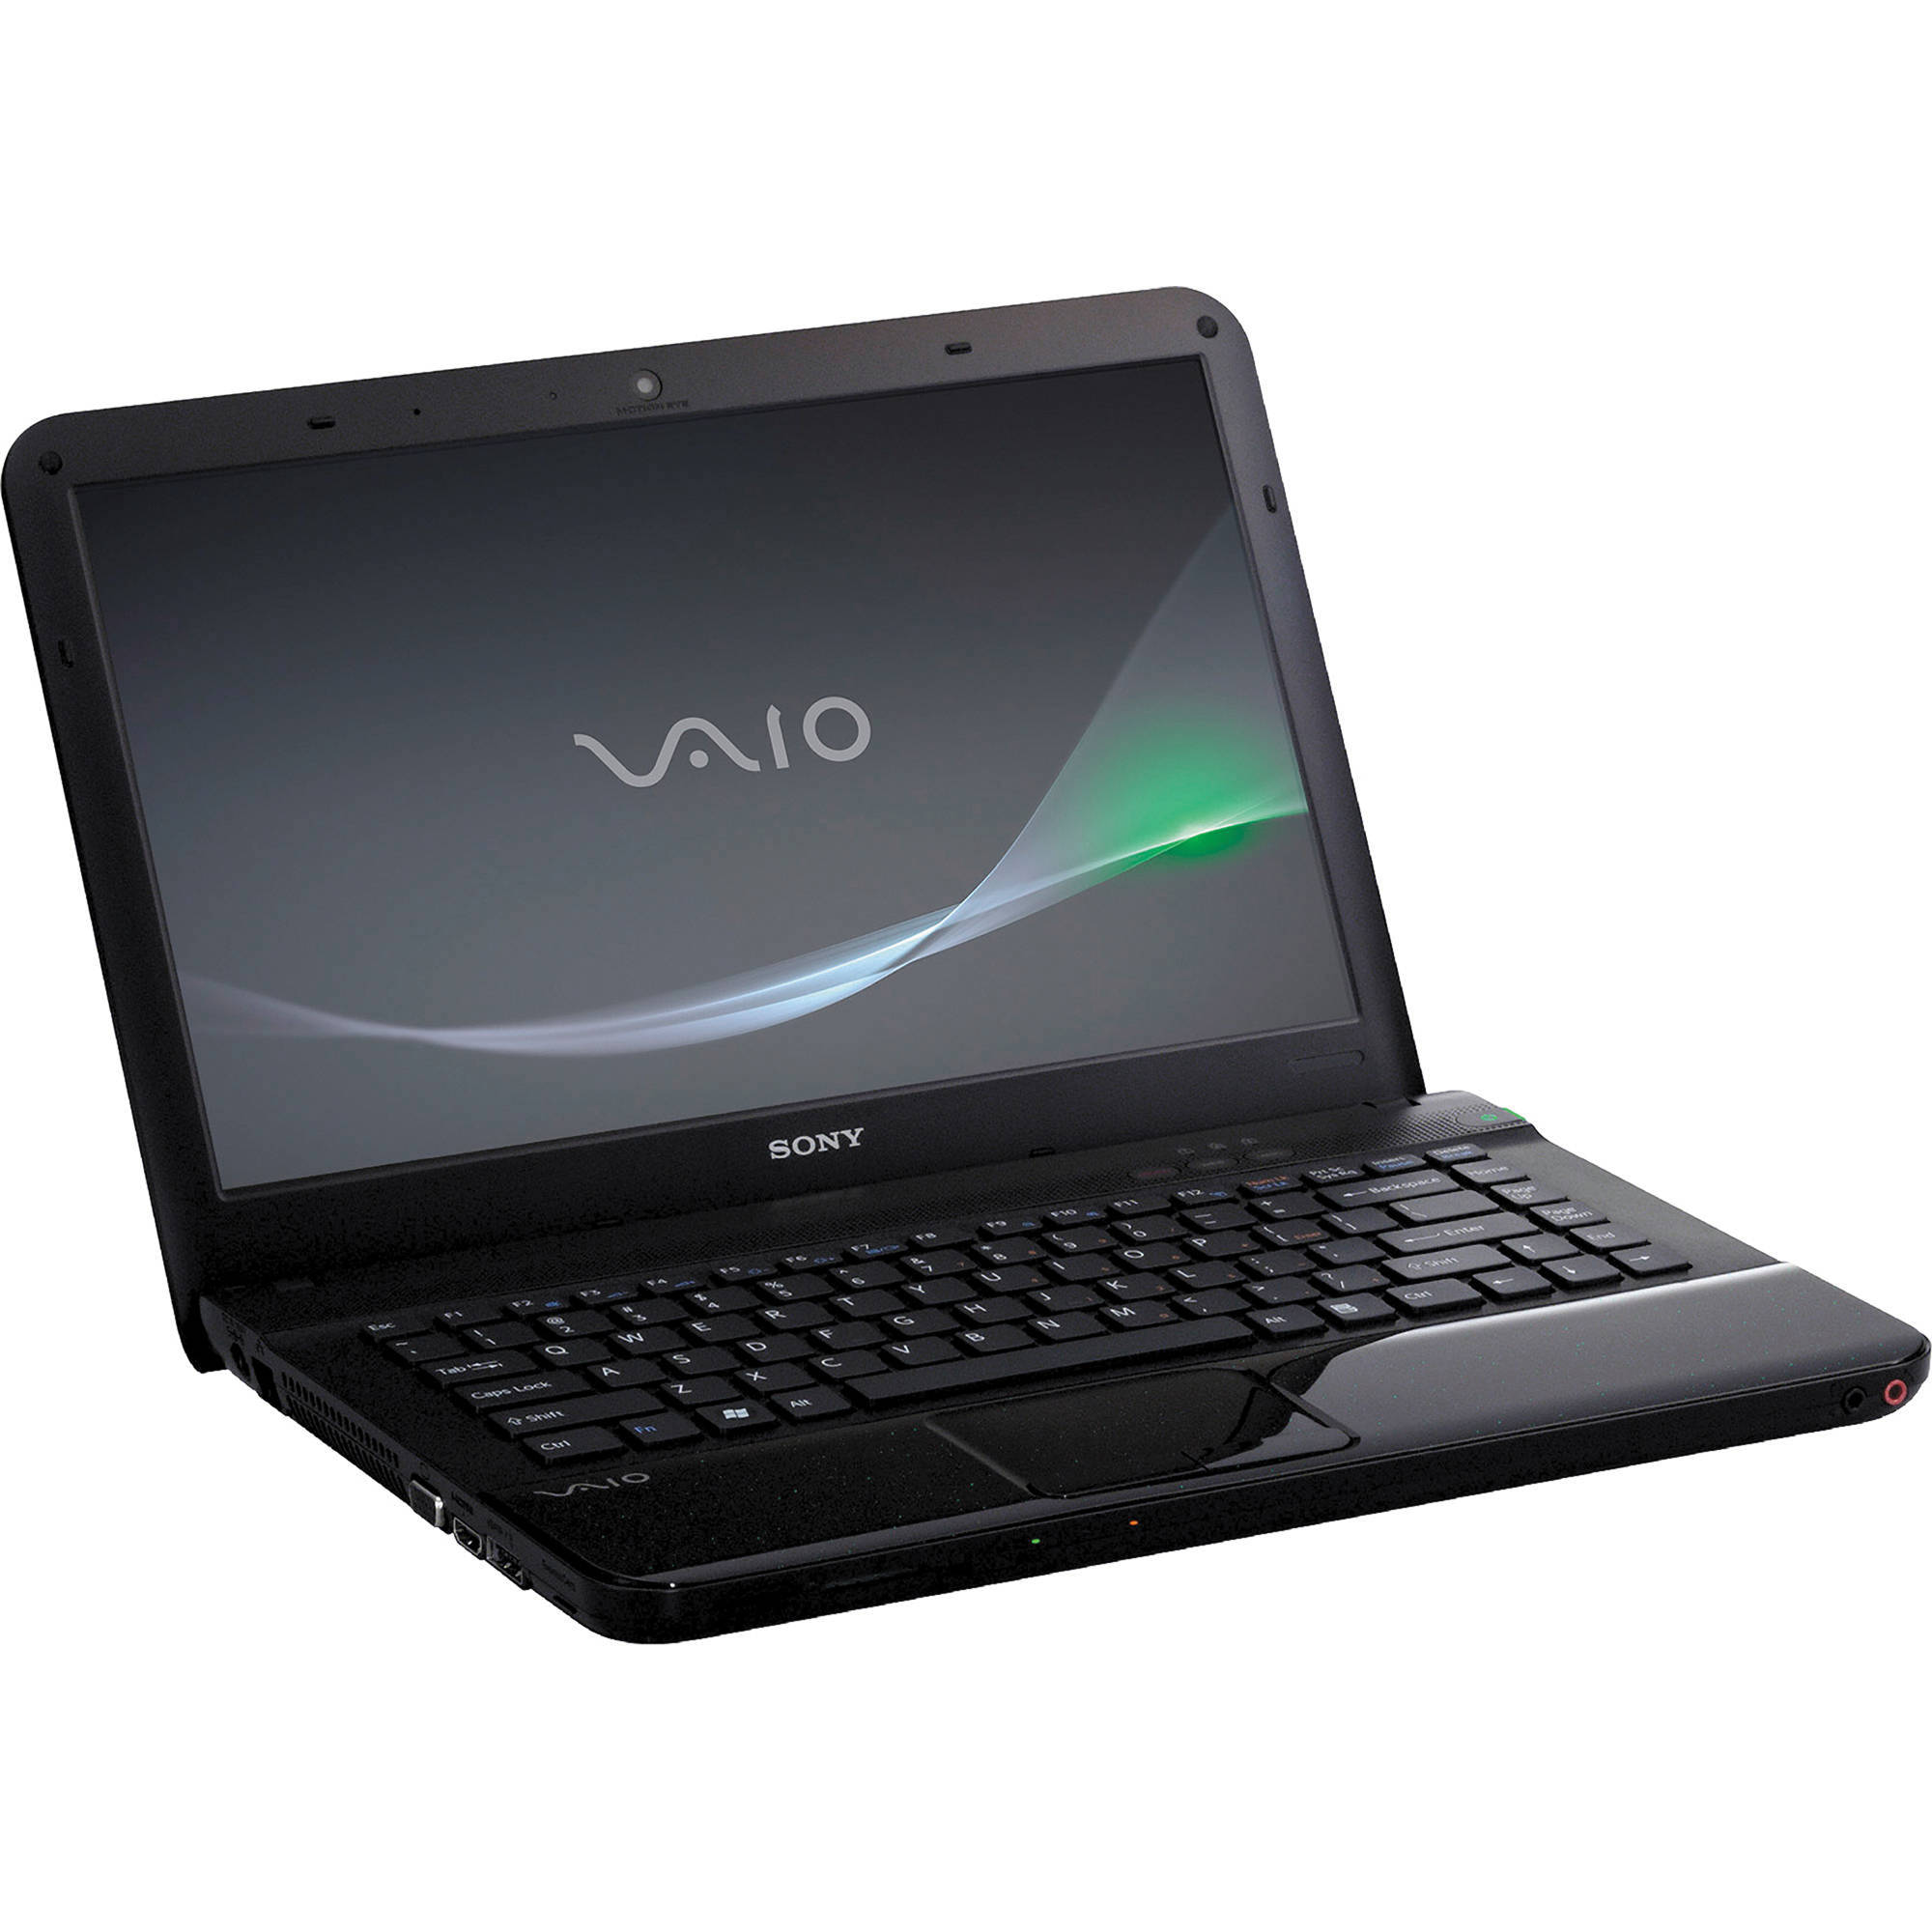 Download Drivers: Sony Vaio VPCF132FX/B